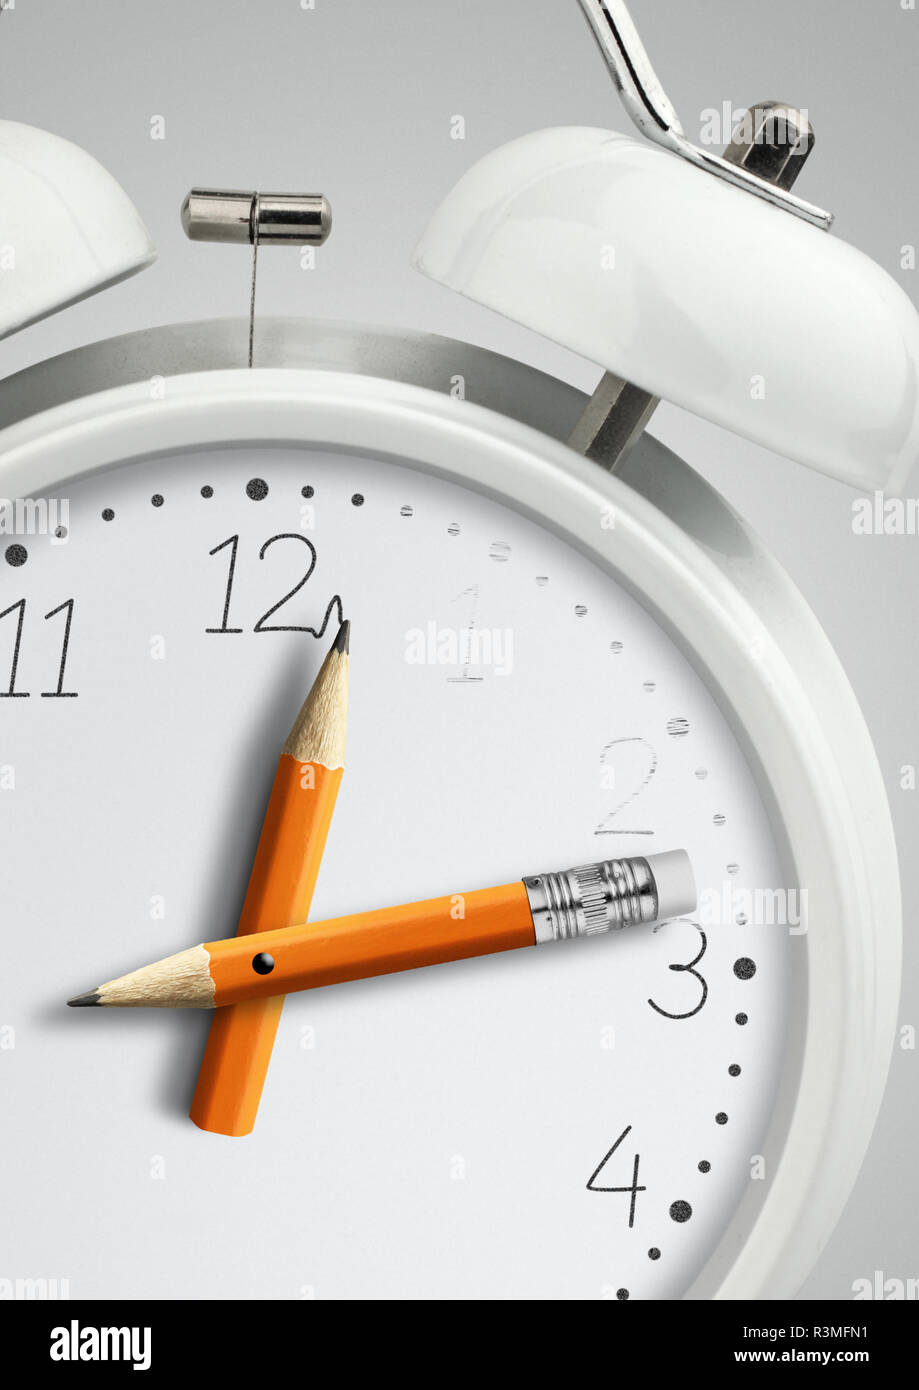 Time concept, clock with pencil clock hand, close-up - Stock Image